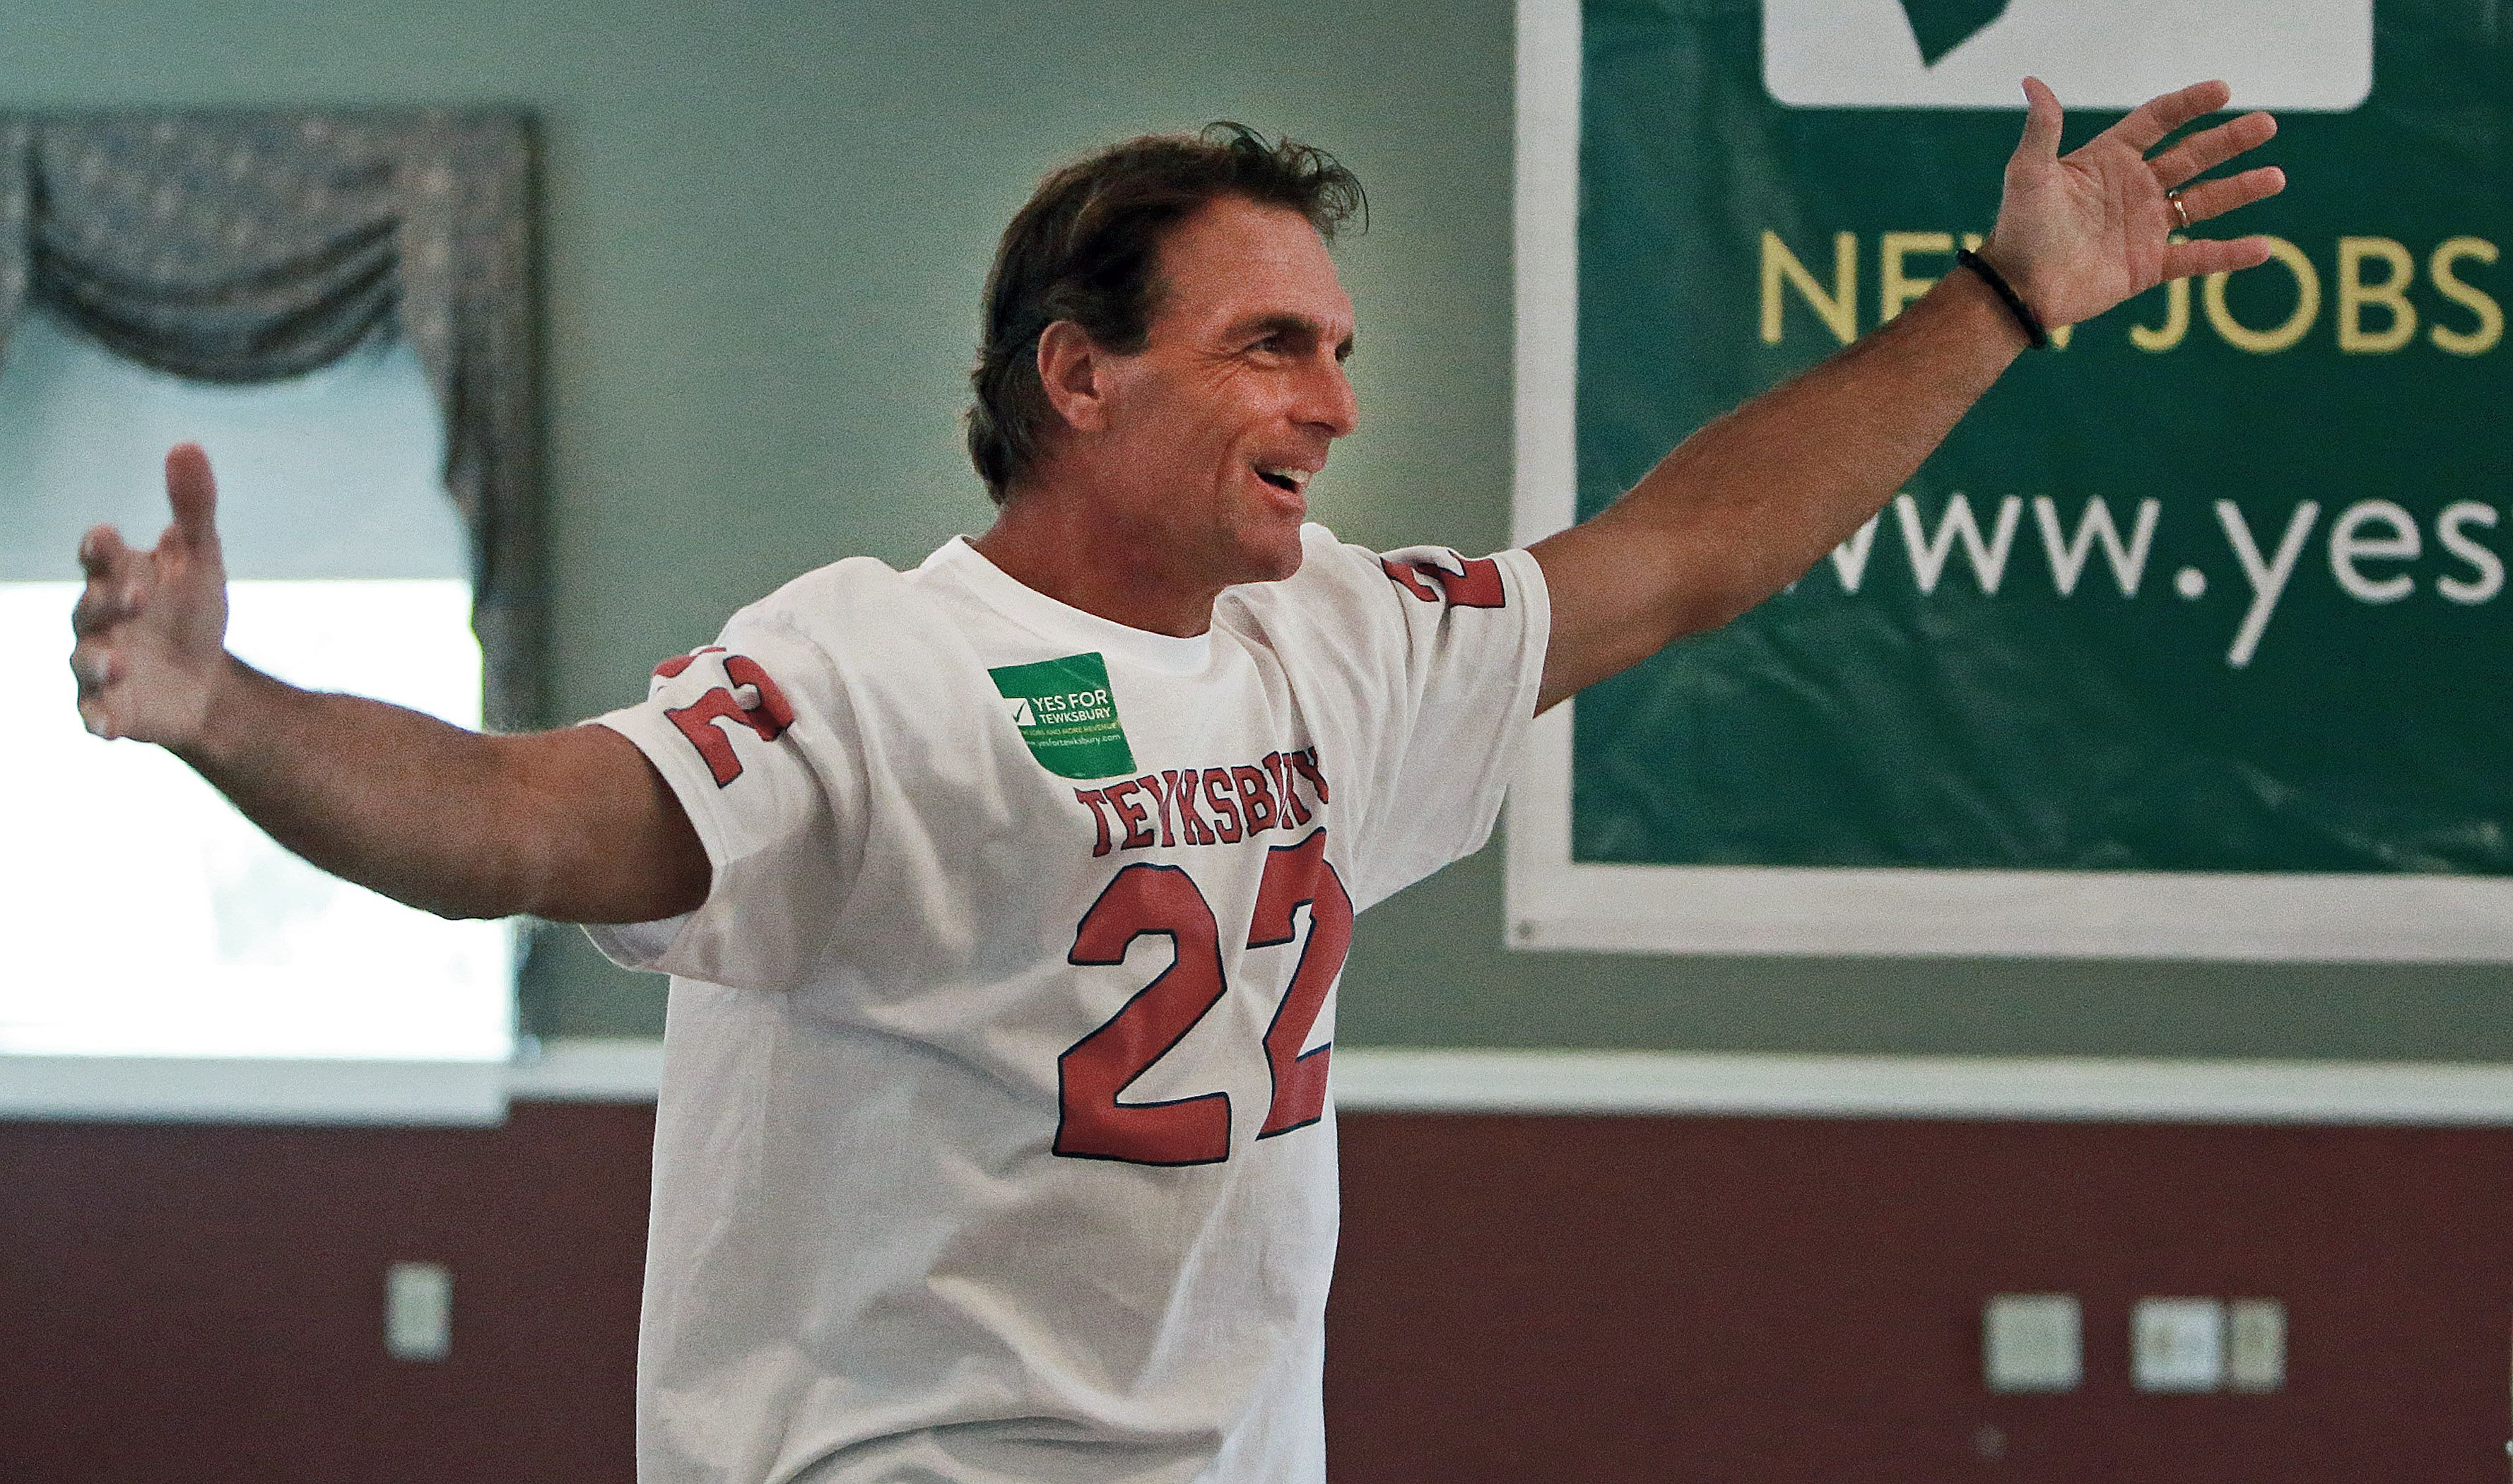 Doug Flutie returns to town to take a Traditional bow - The